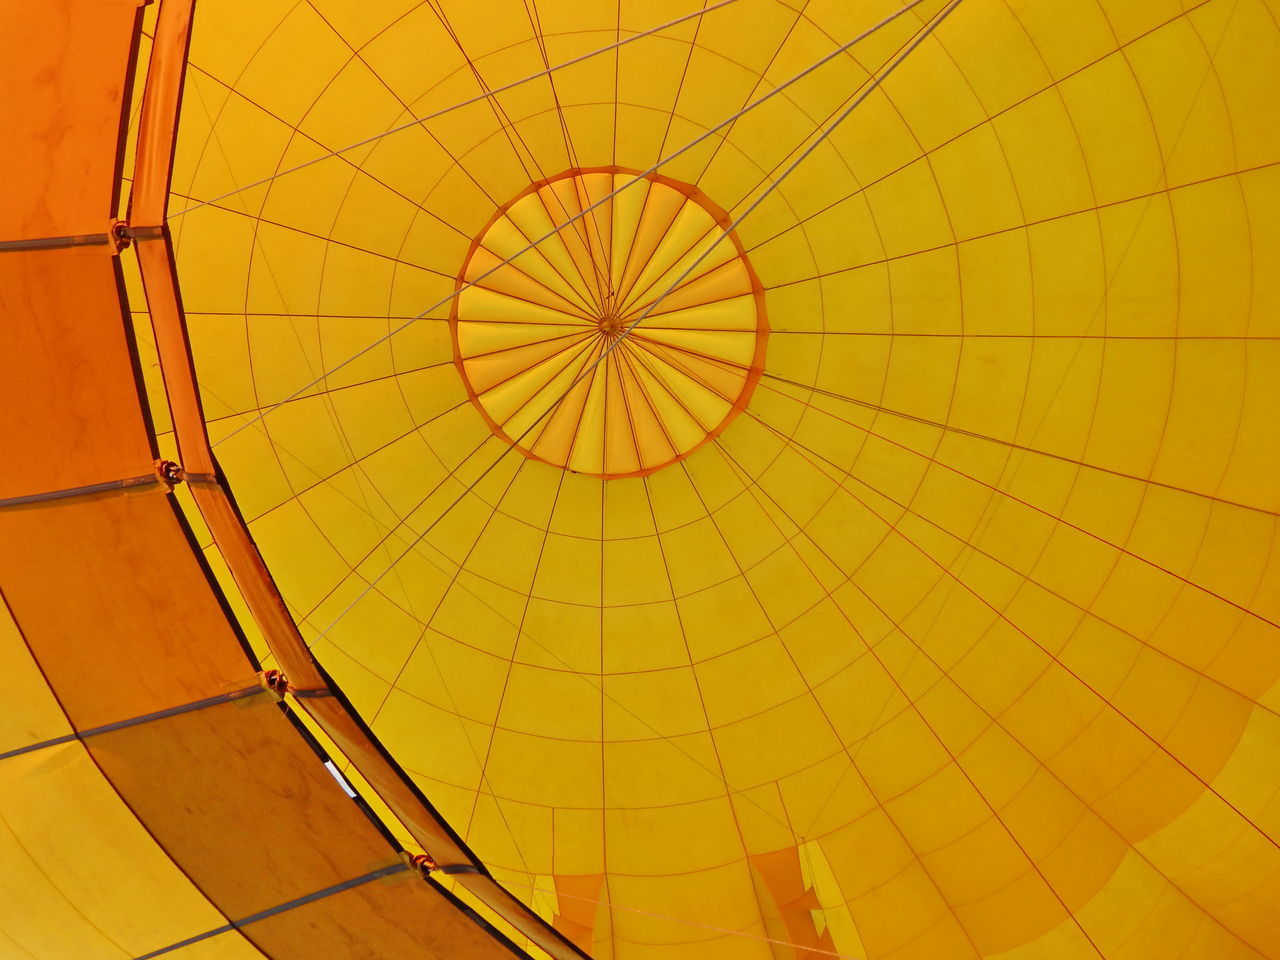 Inside flying air balloon Adventure Backgrounds Ballooning Festival Bright Day Hot Air Balloon Inside Inside Things No People Outdoors Pattern Sky Transportation Yellow